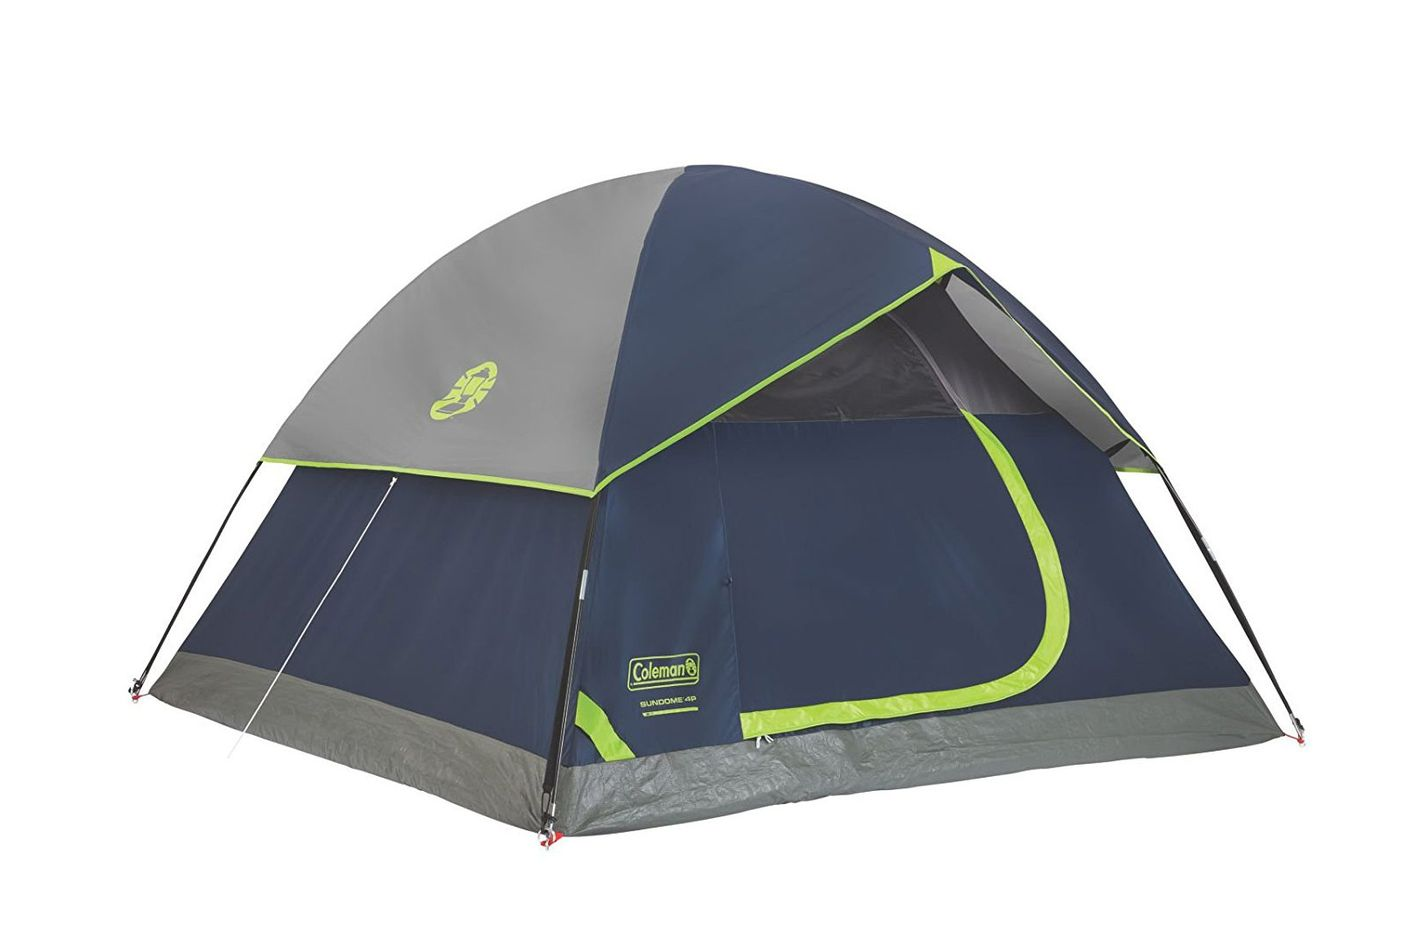 best outdoor tents  sc 1 st  New York Magazine & The Best Outdoor Tents on Amazon Reviews